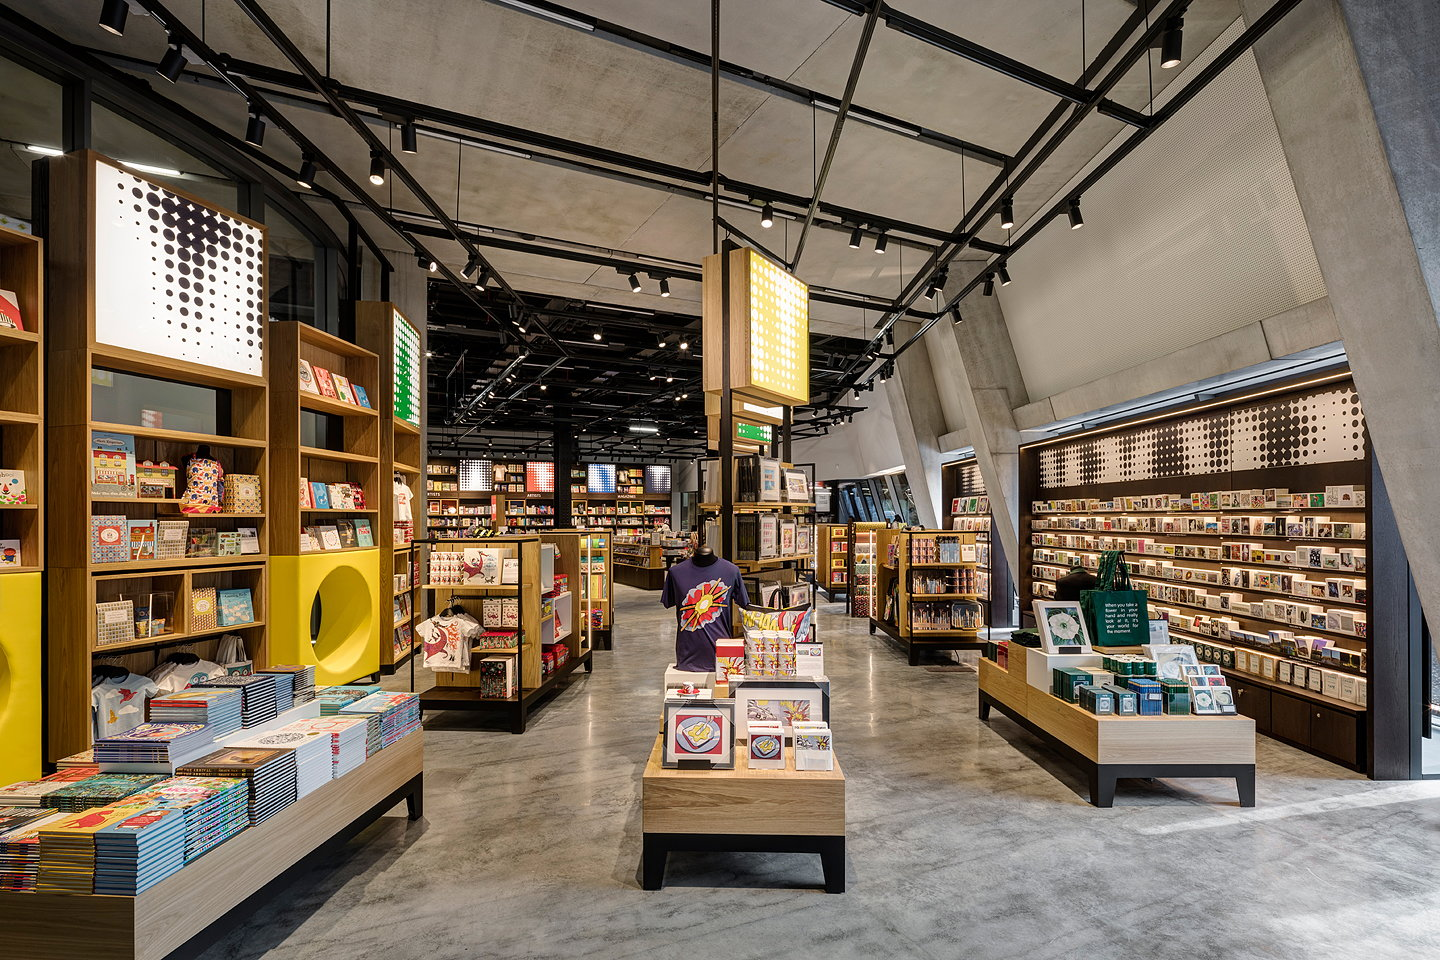 Uxus designs new tate modern retail space - Interior design for retail stores ...